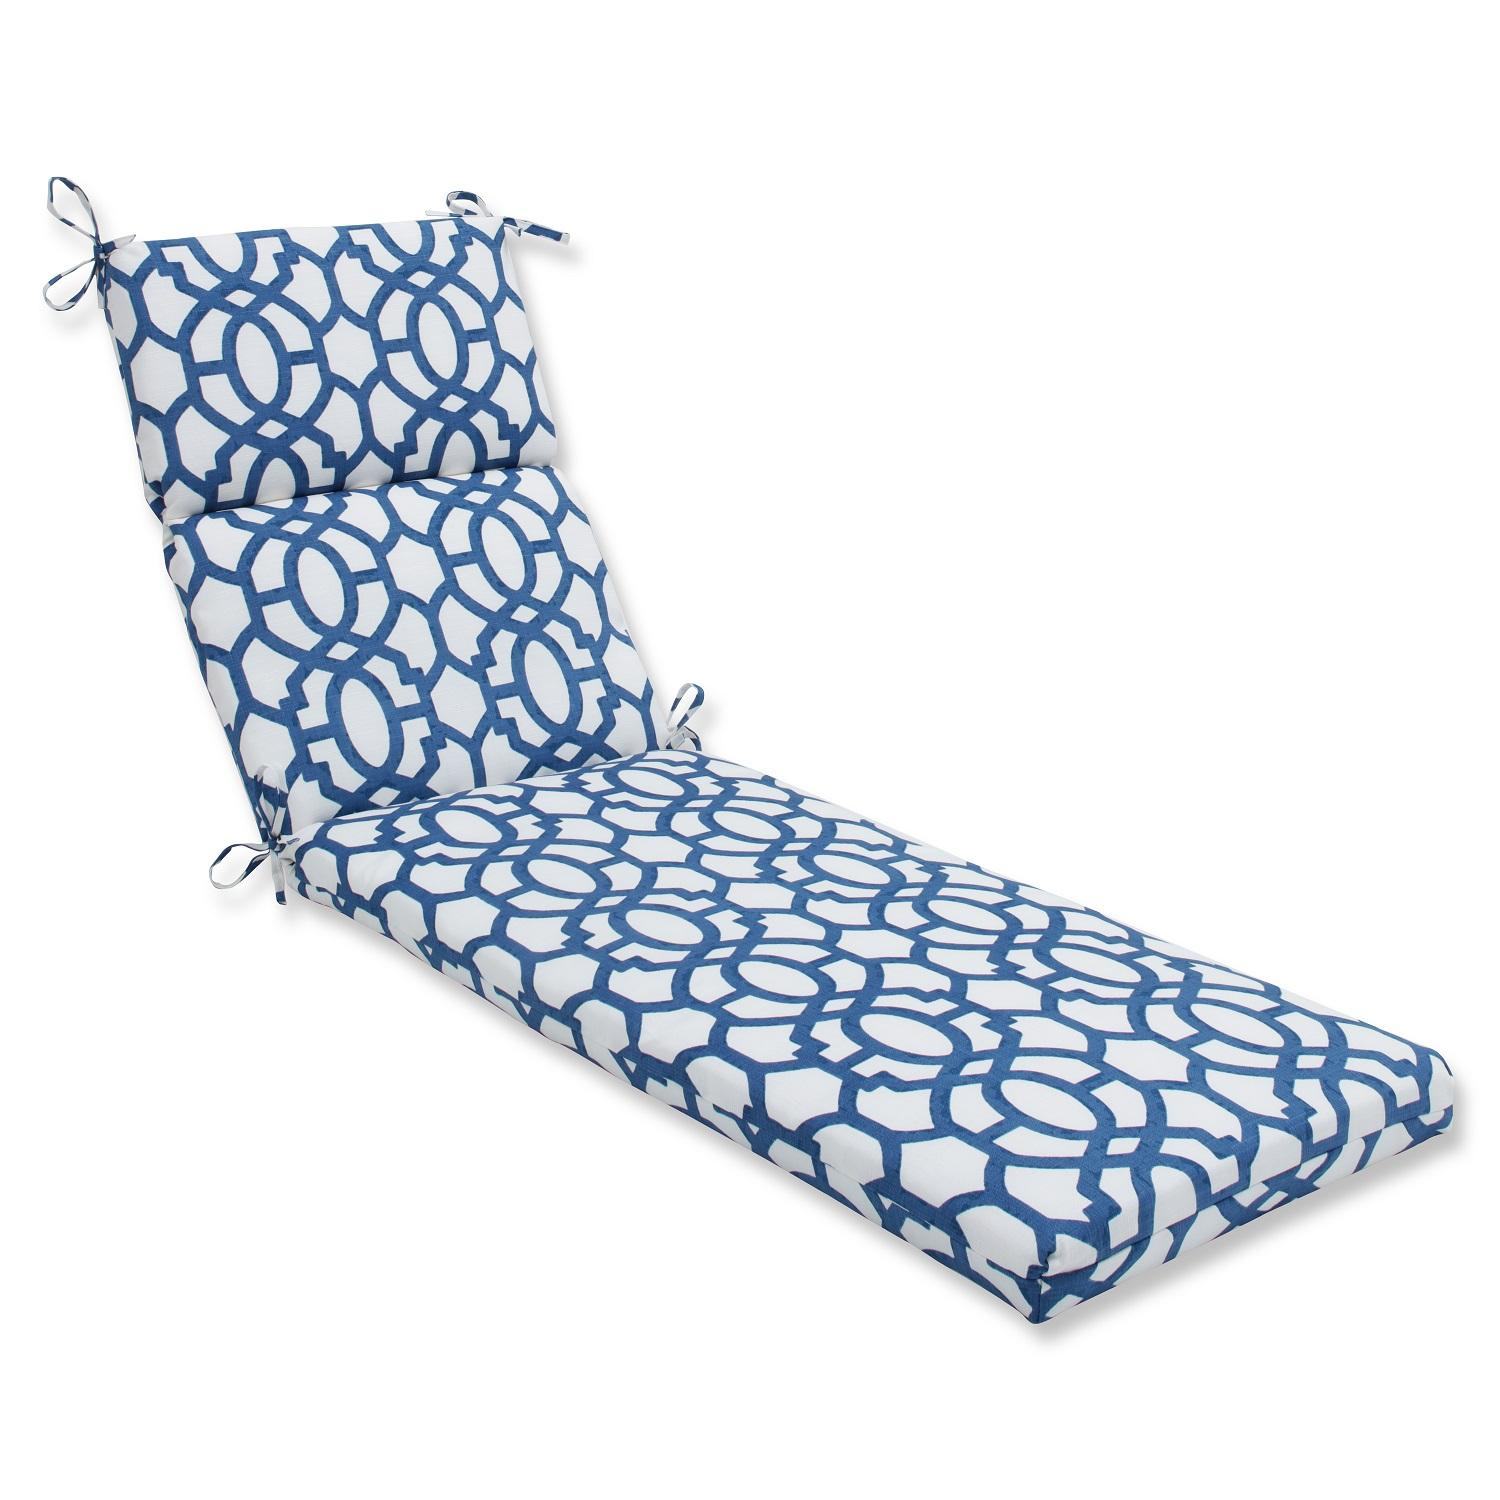 "72.5"" Imperial Blue Grecian Trellis Outdoor Patio Chaise Lounge Cushion"